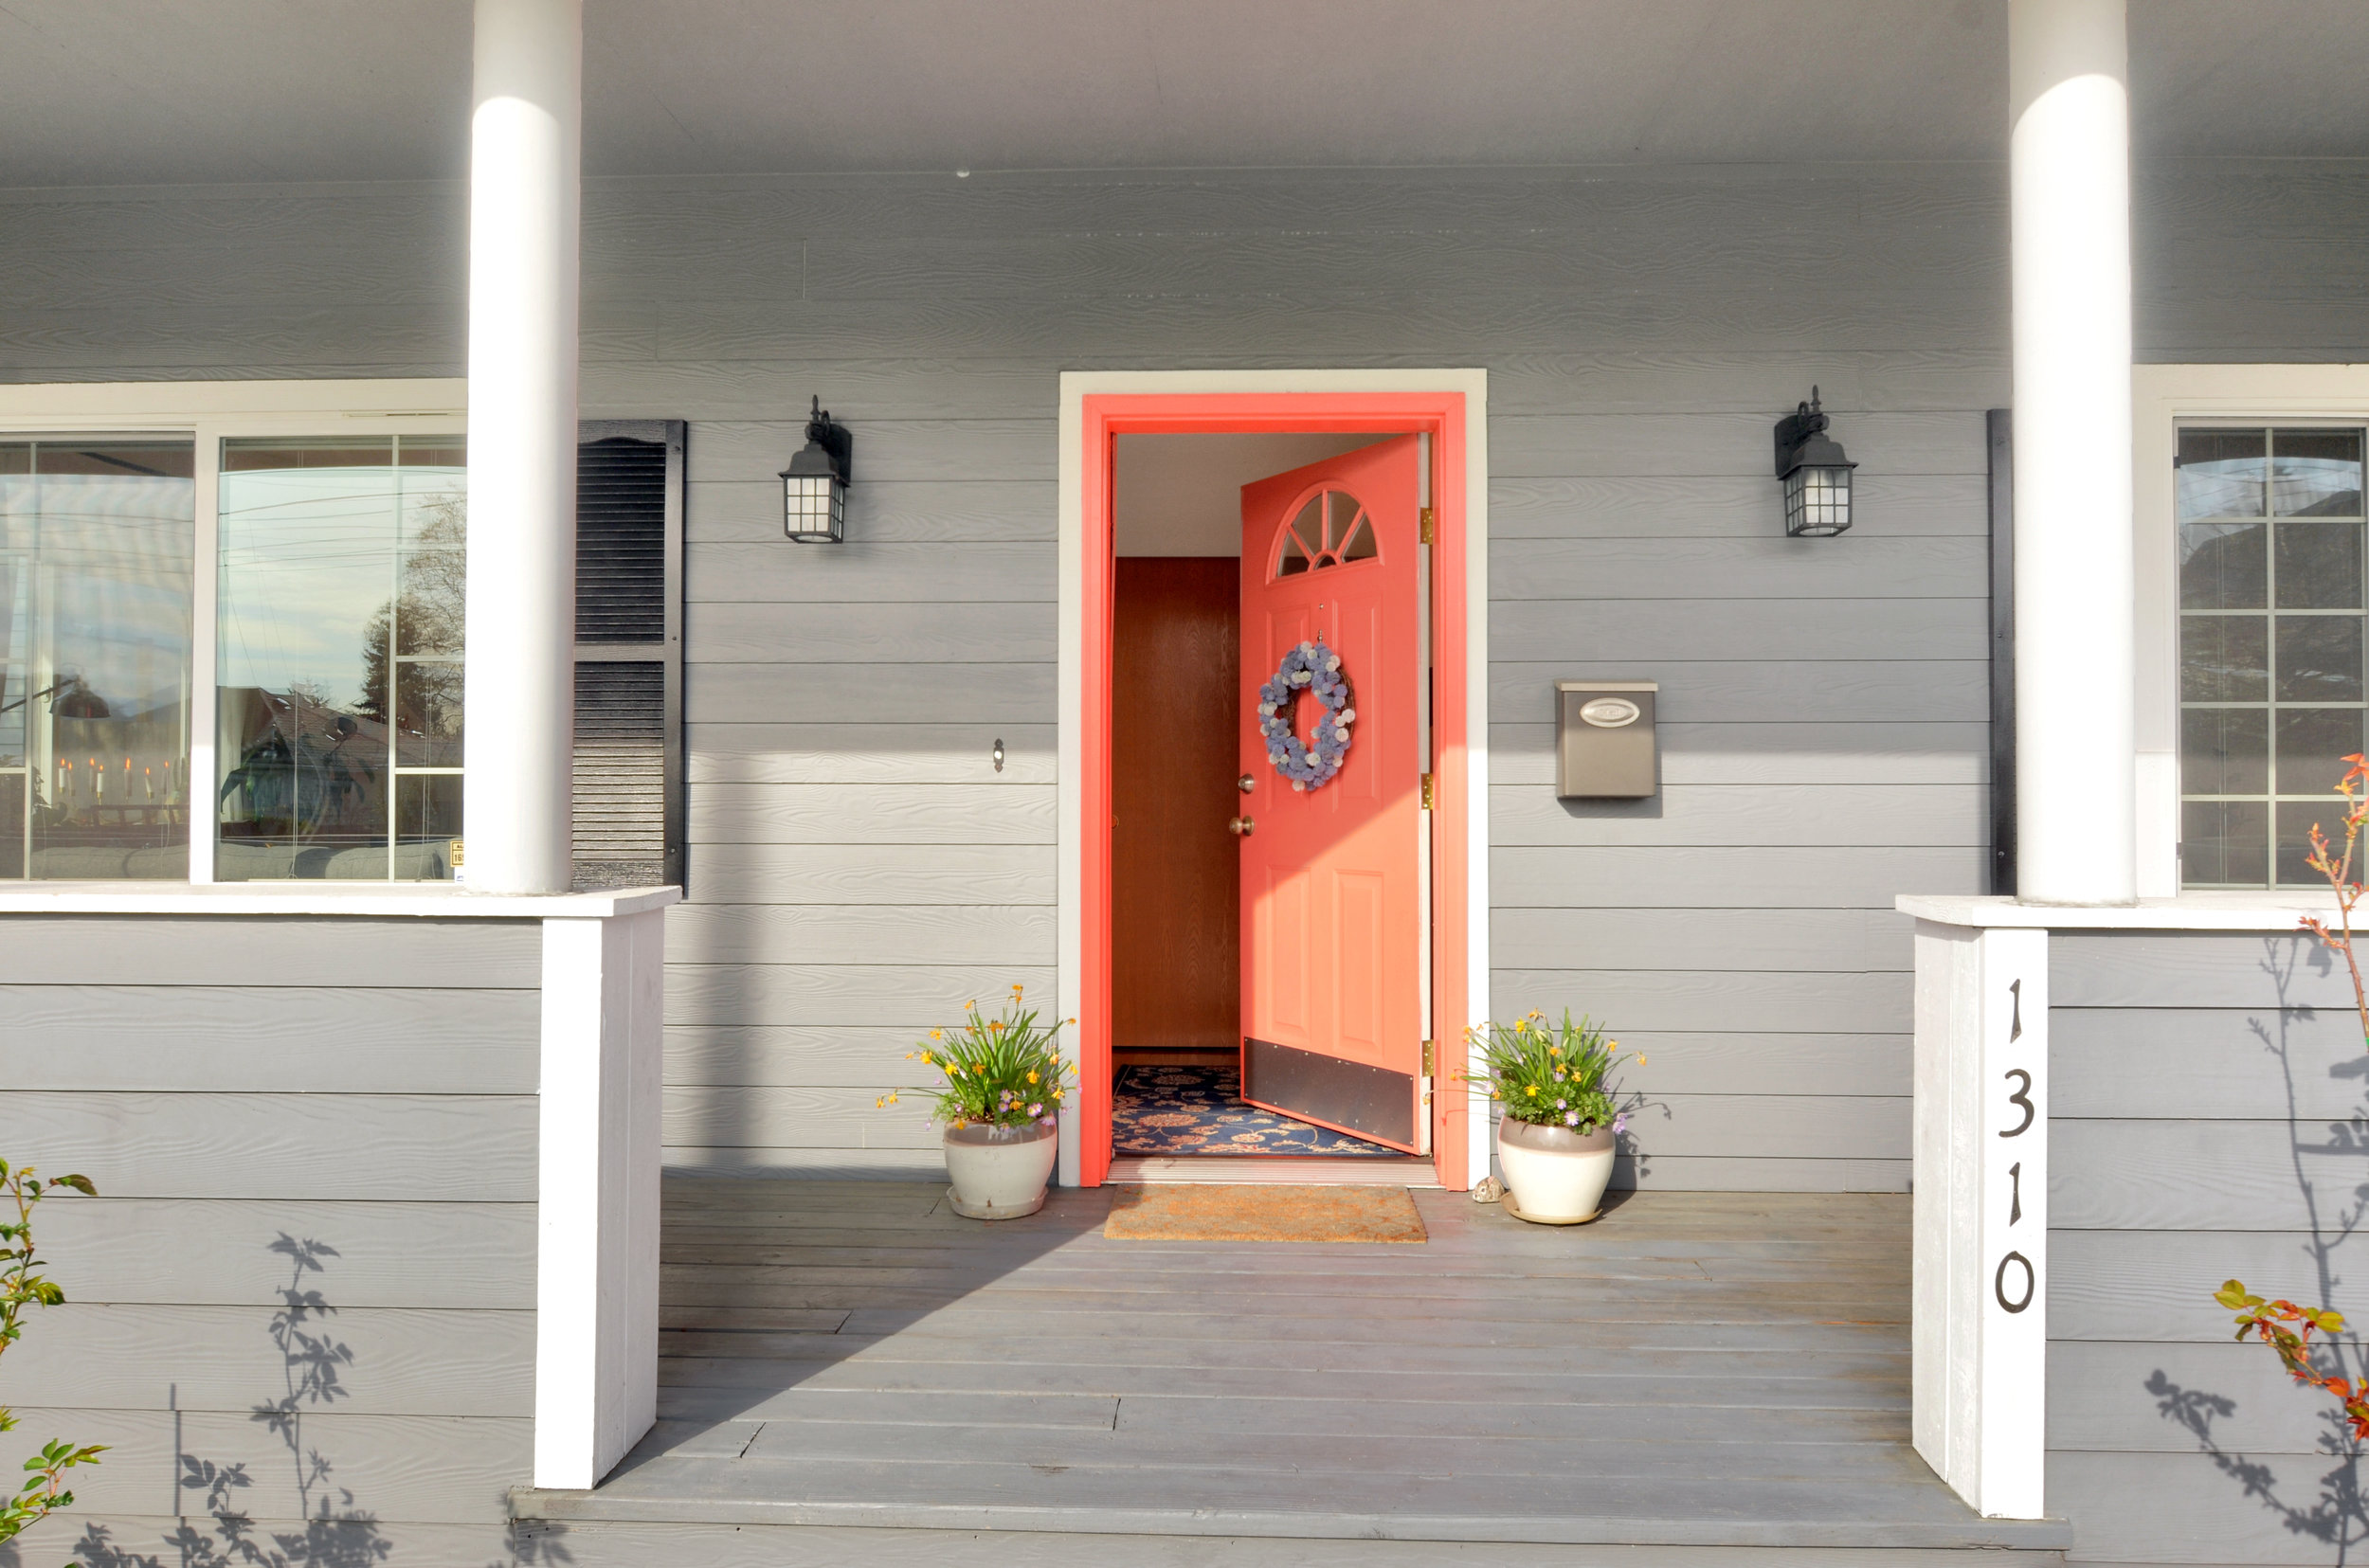 Another look at the welcoming, east facing covered porch with its bright door flanked by big windows.